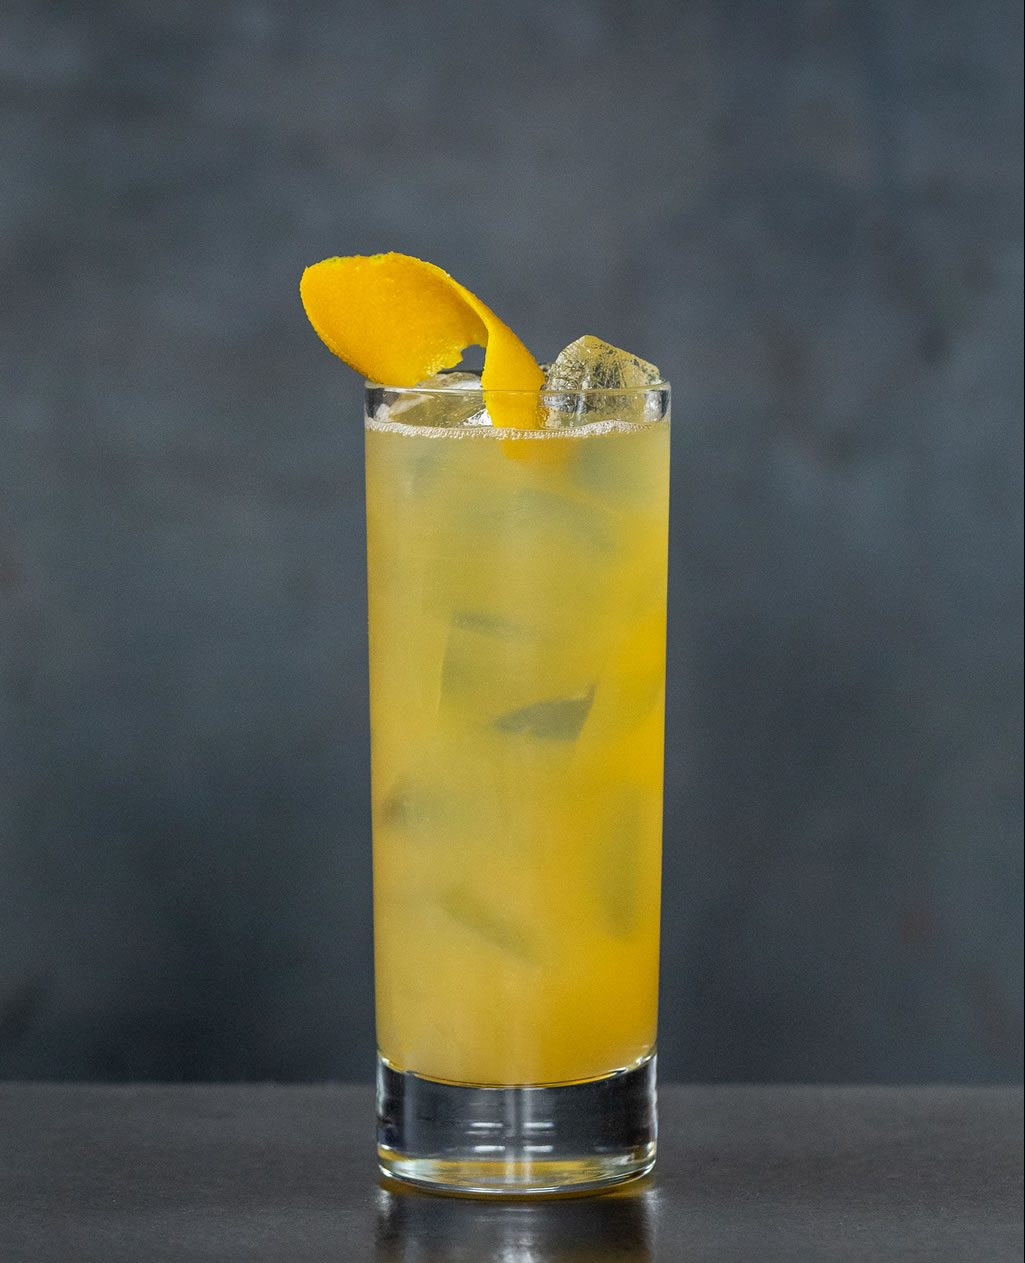 09-2019_OTOTO_Cocktail_Final Images_Web-Res_02